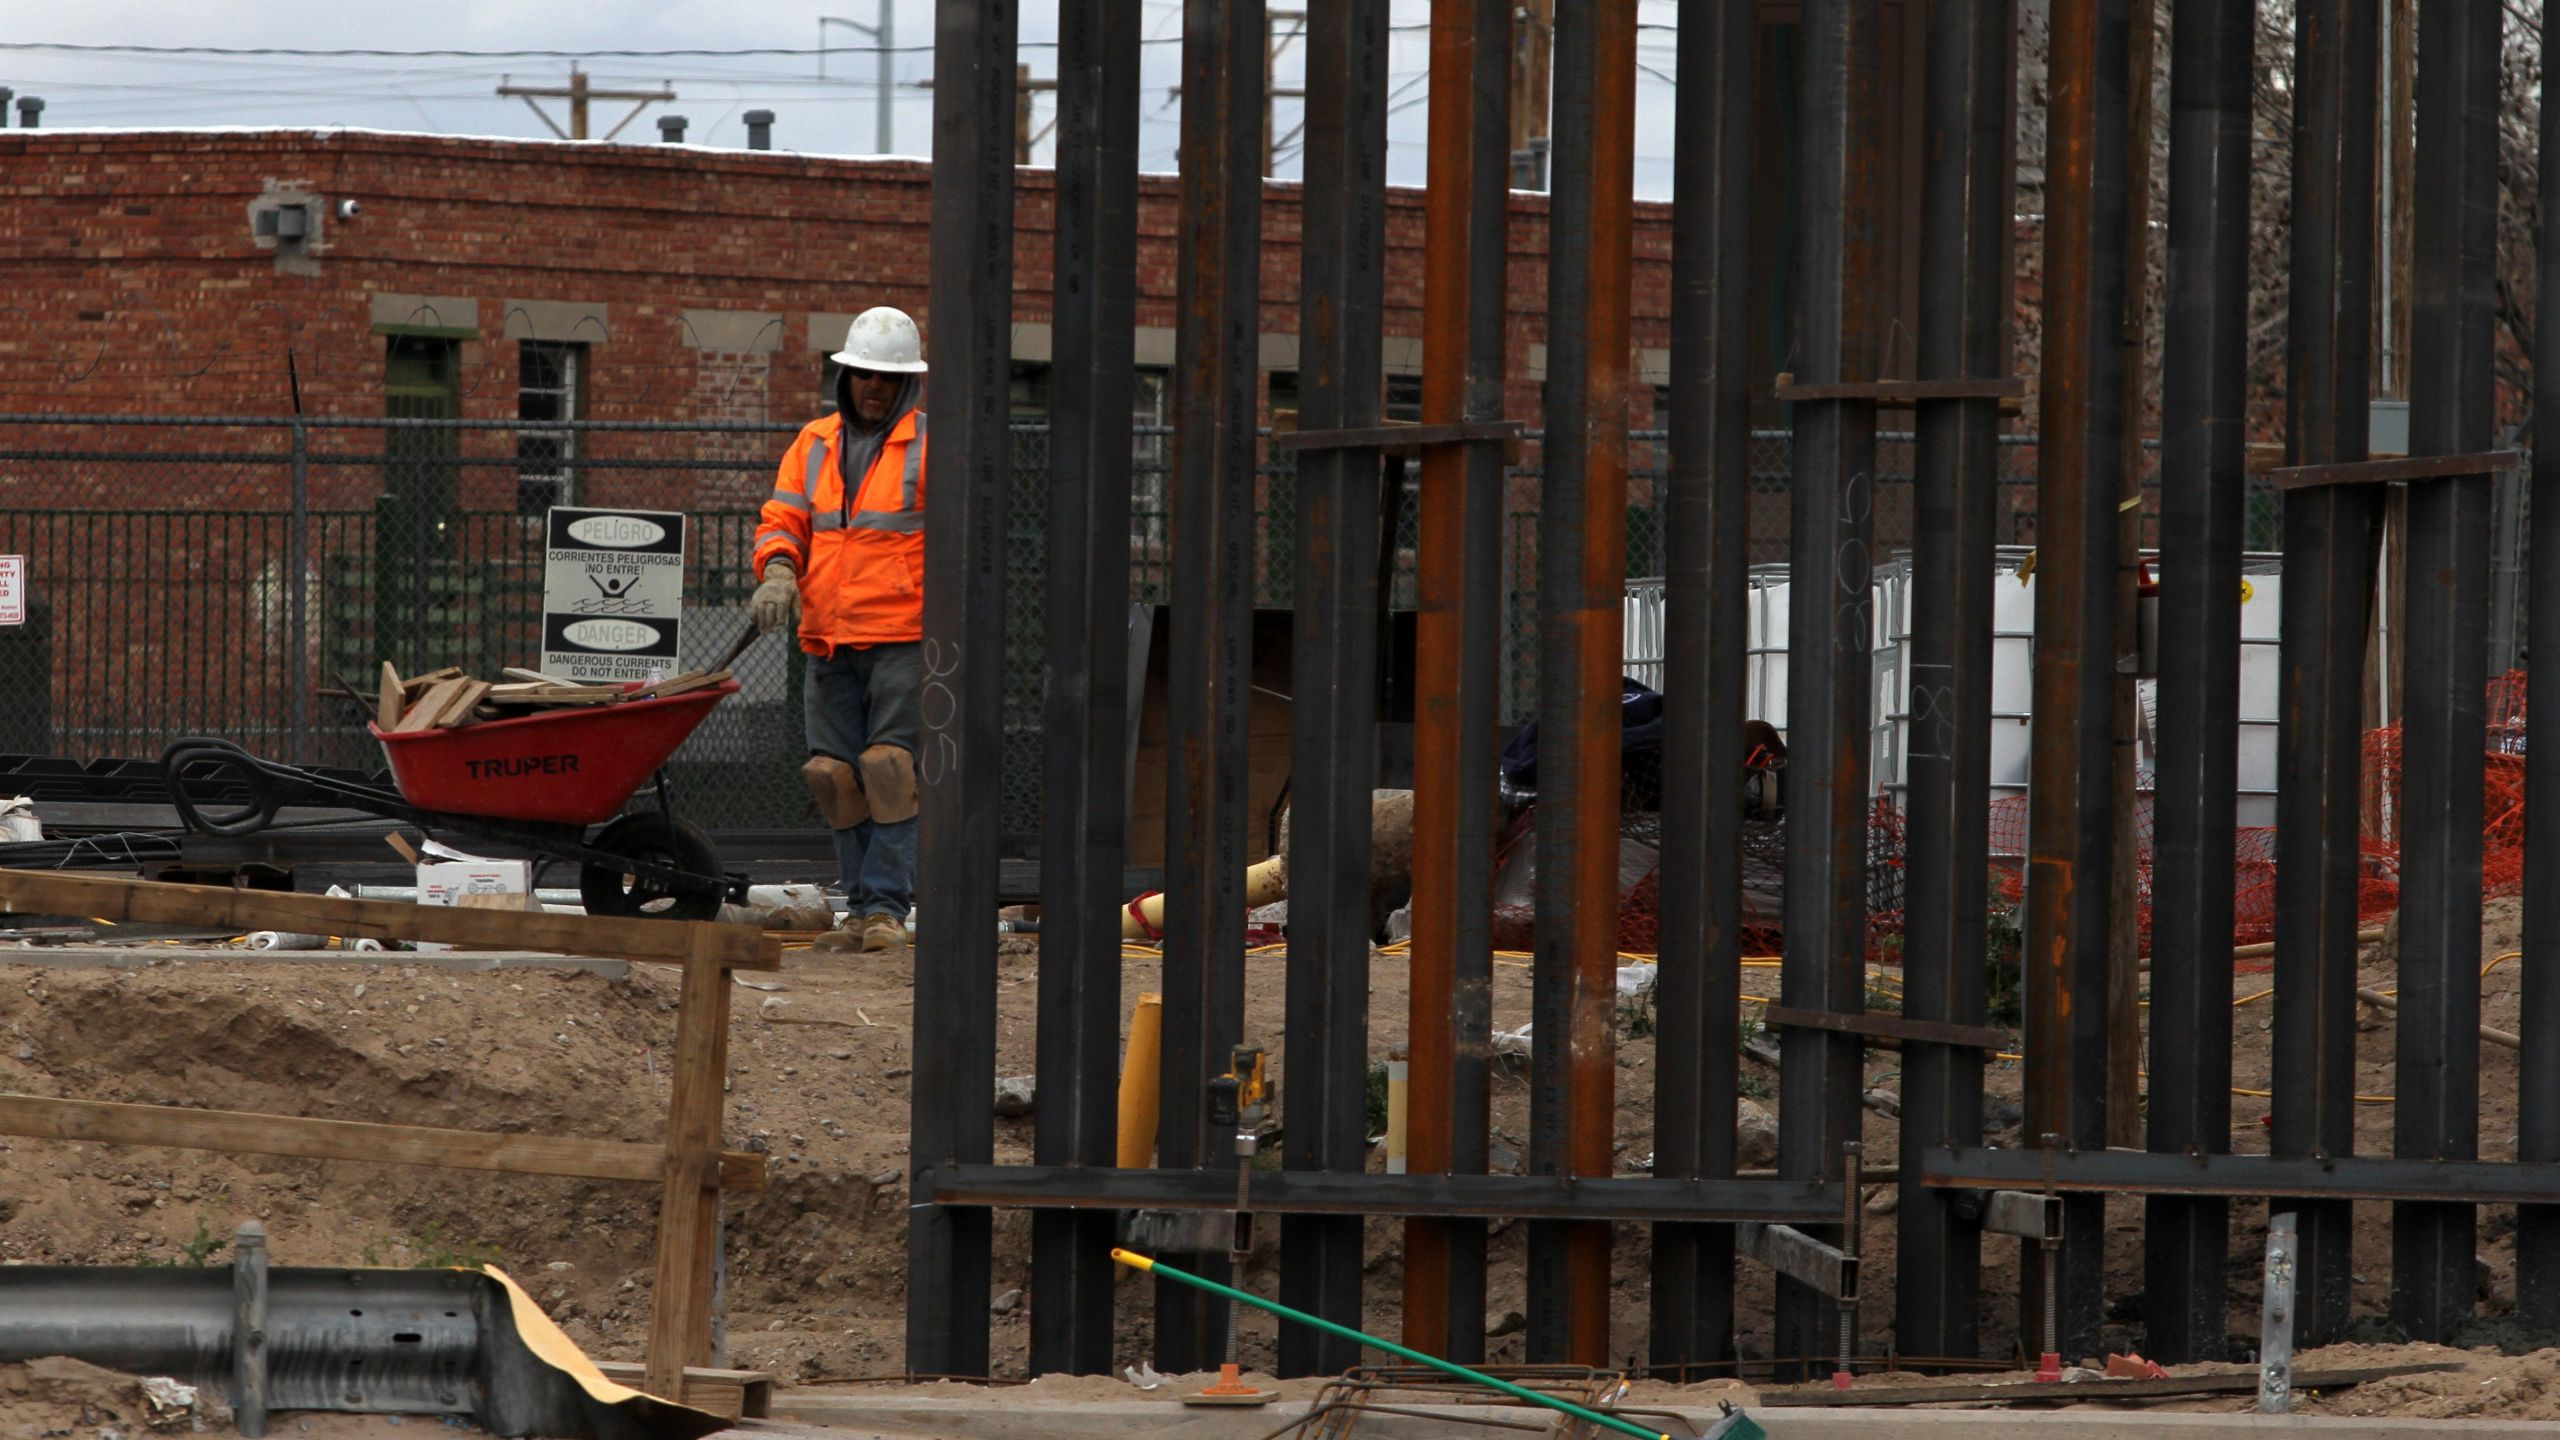 U.S. workers build the border wall between El Paso, Texas, and Ciudad Juarez, Mexico on Feb. 5, 2019. (Credit: Herika Martinez / AFP/Getty Images)